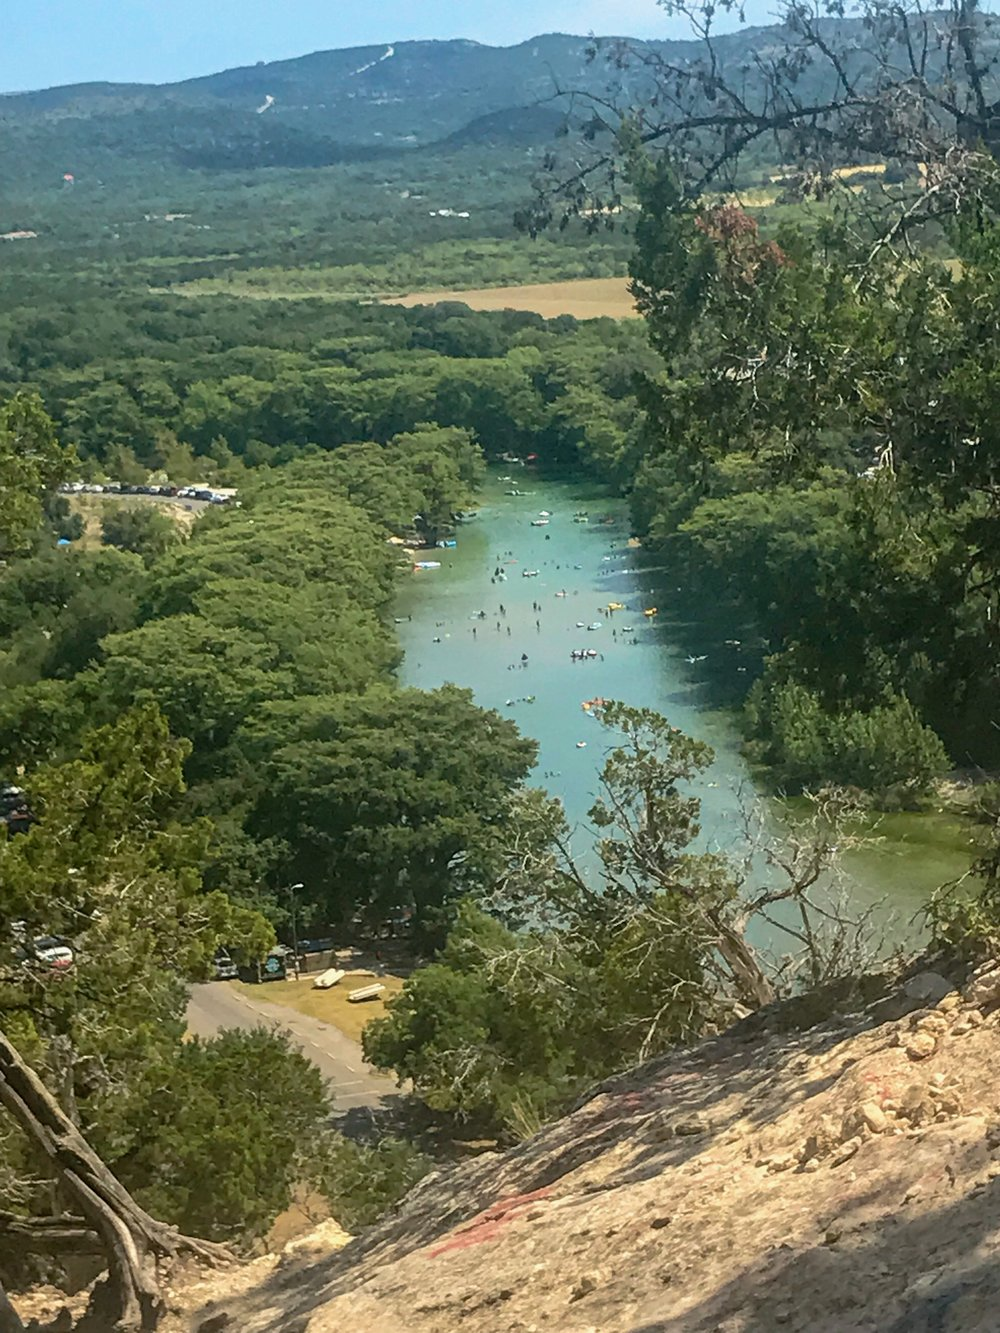 Concan is a small unincorporated community in Uvalde County in the southwestern portion of the Hill Country of Texas. It sits along the Frio River close to Garner State Park and is a popular destination for summer vacationers.